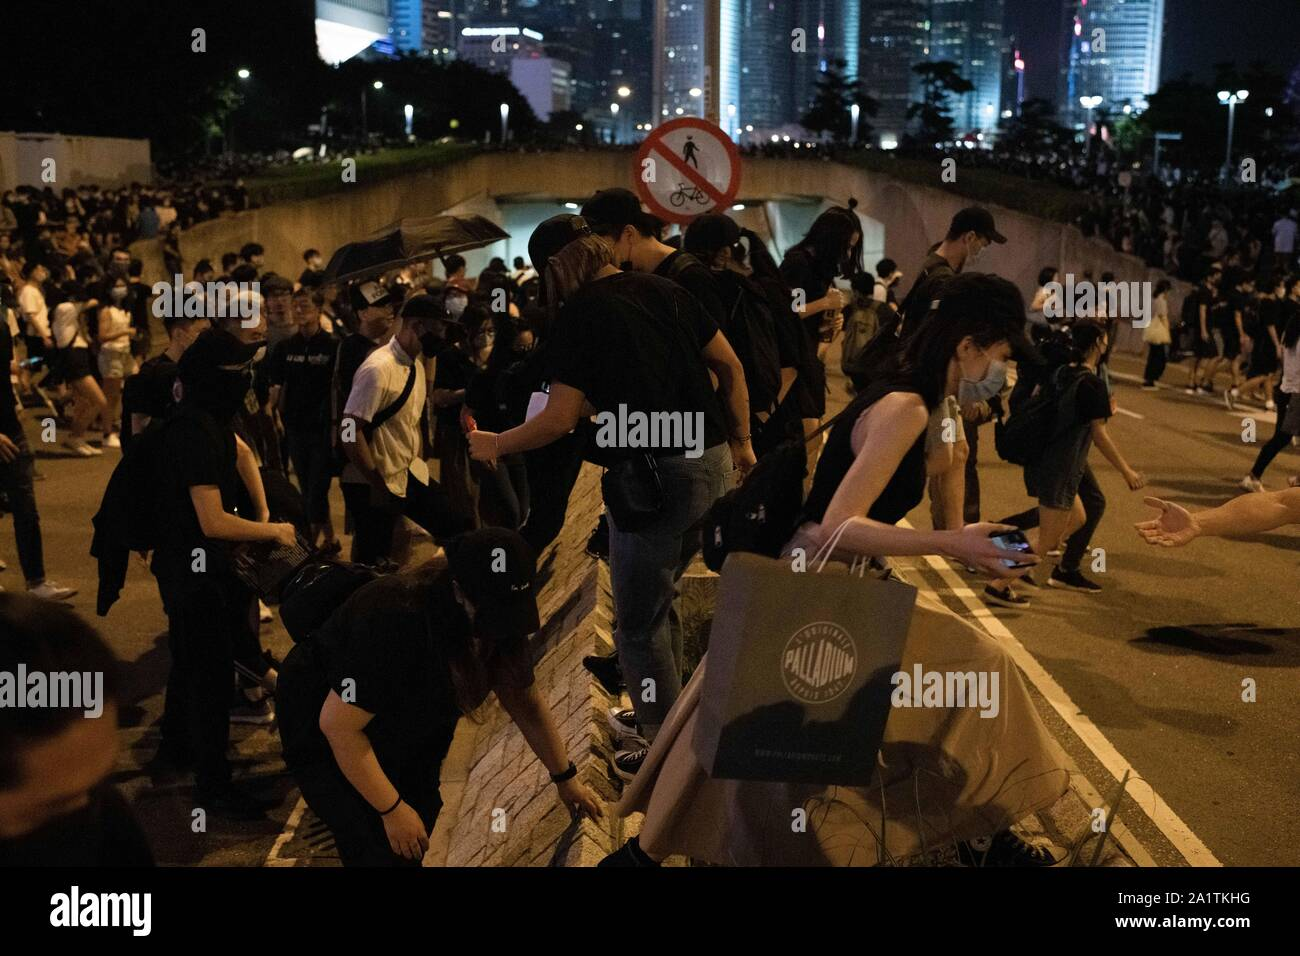 Hong Kong, China. 28th Sep, 2019. Protesters cross an avenue to attend the demonstrations in Admiralty.Demonstrations continue in Hong Kong in another night of protests during the commemoration of the 5th anniversary of the Umbrella Movement at Tamar Park. Credit: SOPA Images Limited/Alamy Live News Stock Photo